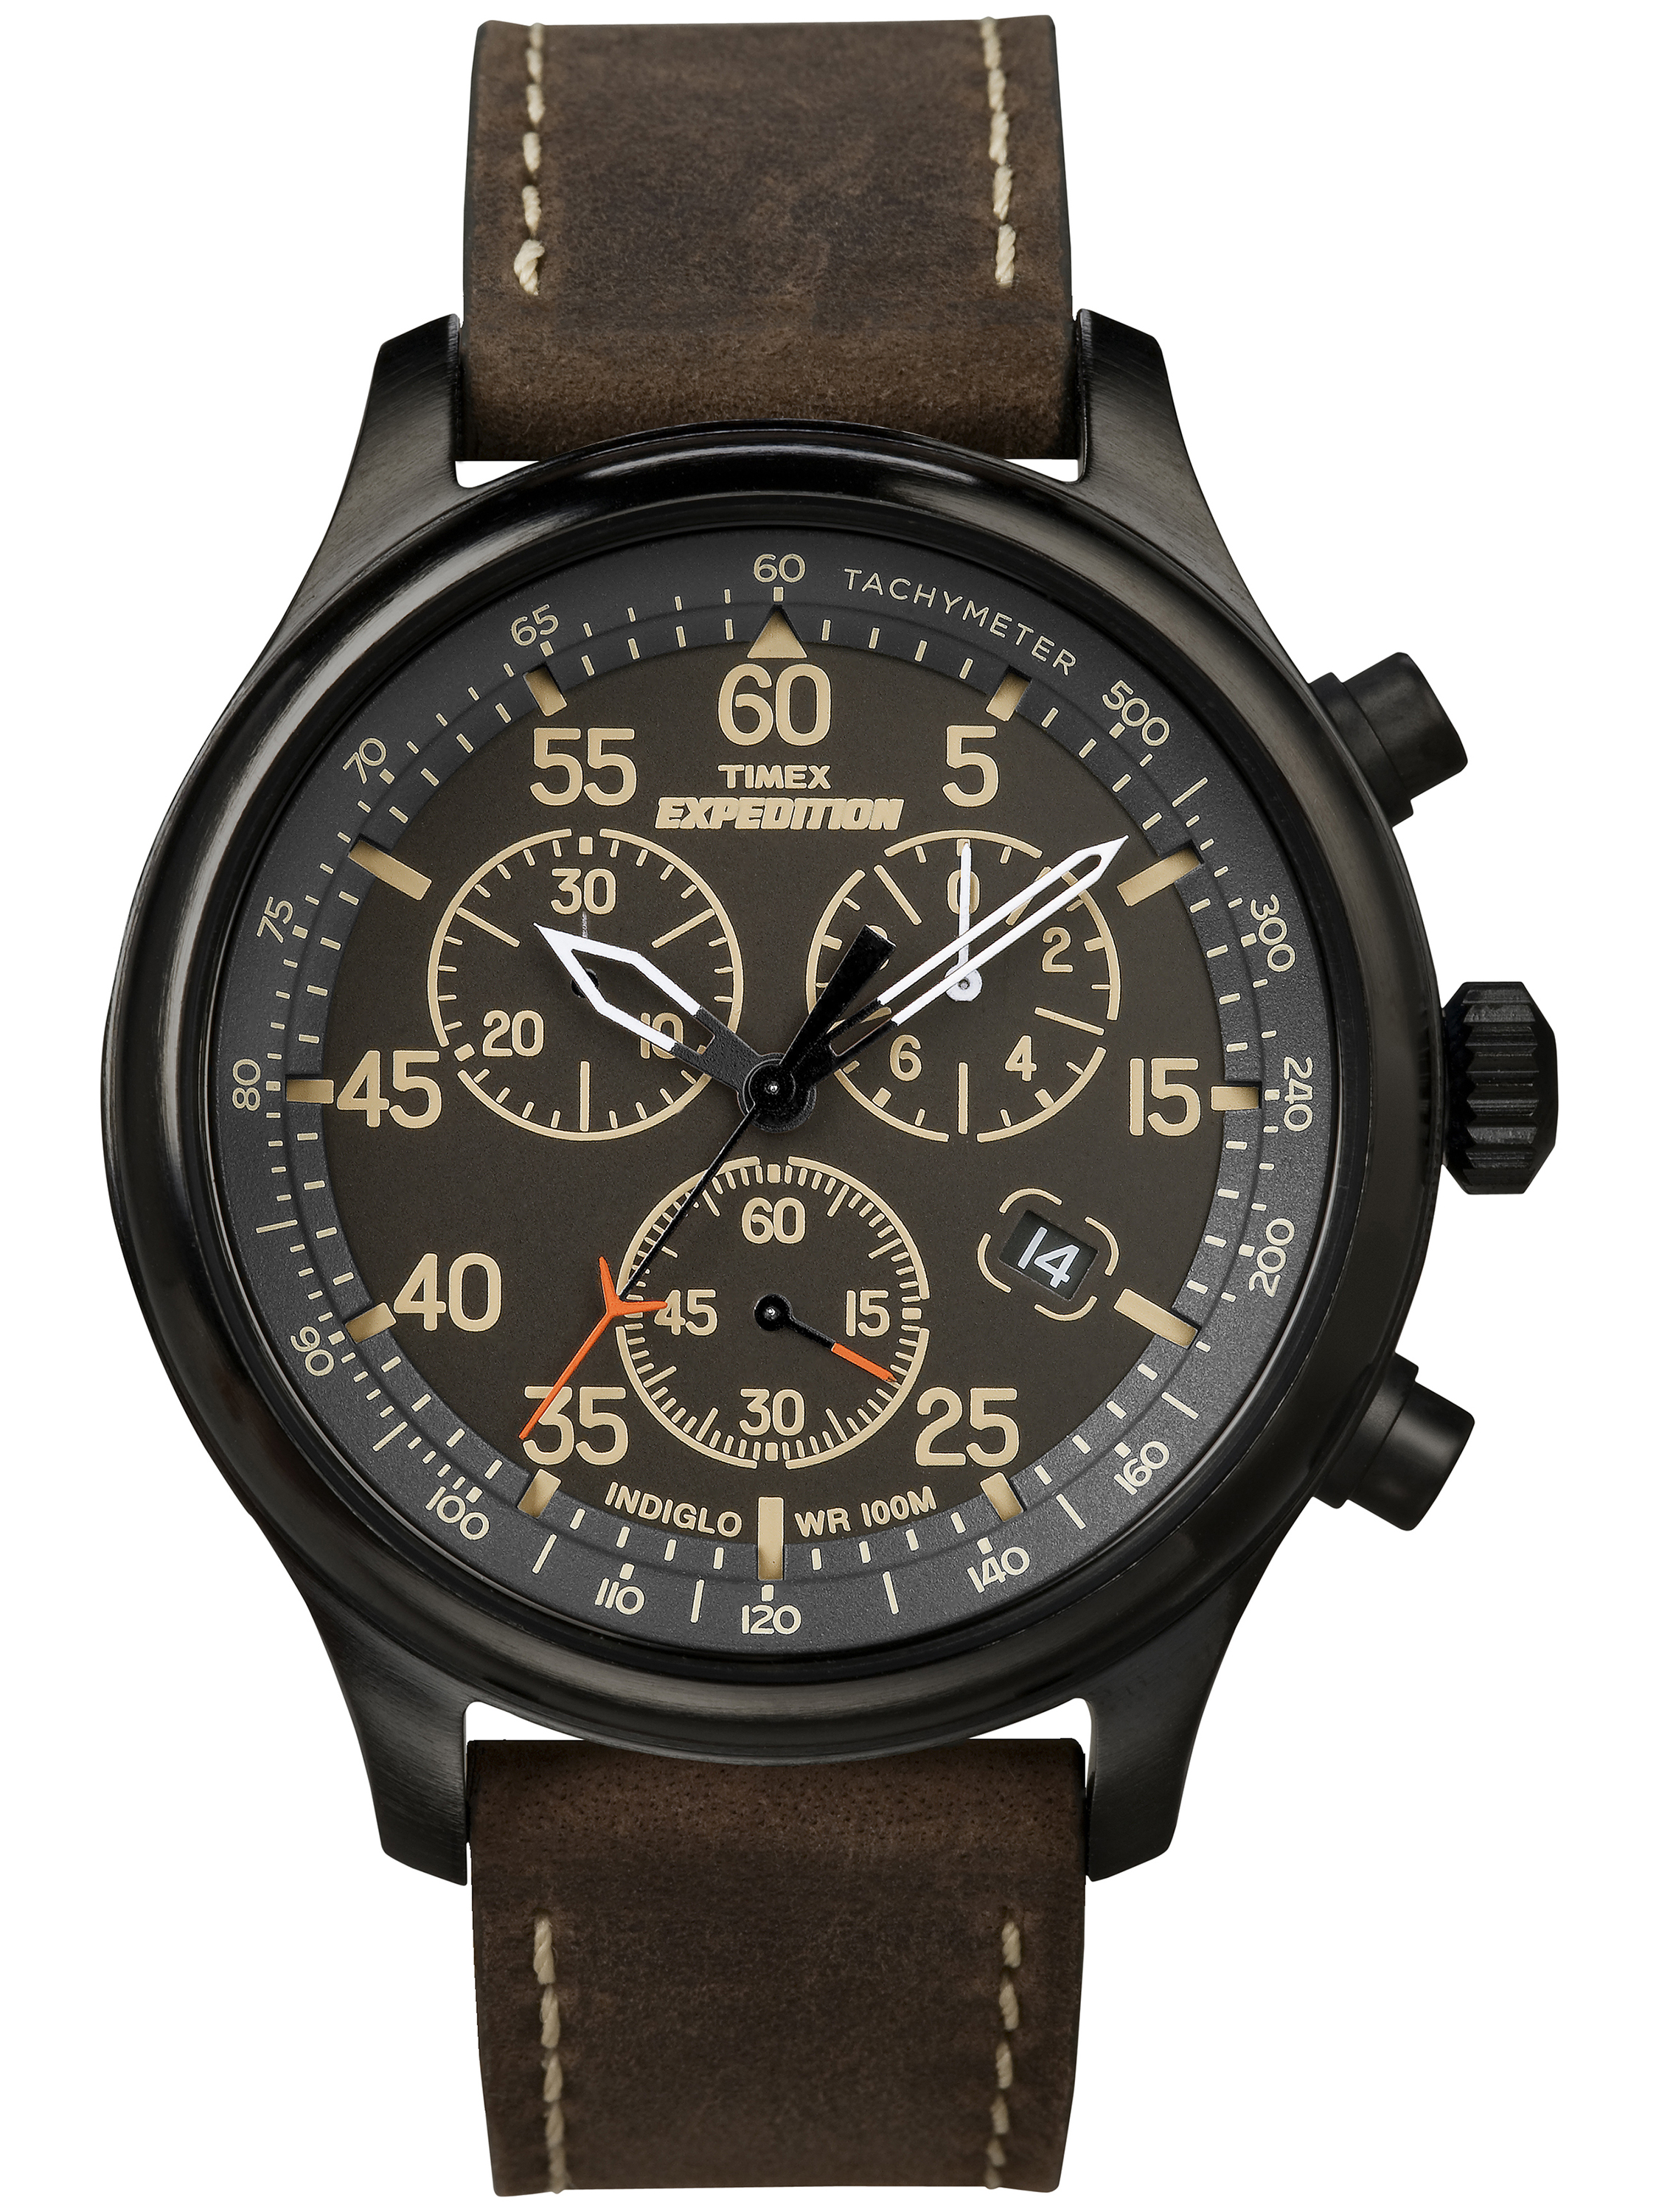 Men's Expedition Field Chronograph Watch, Brown Leather Strap